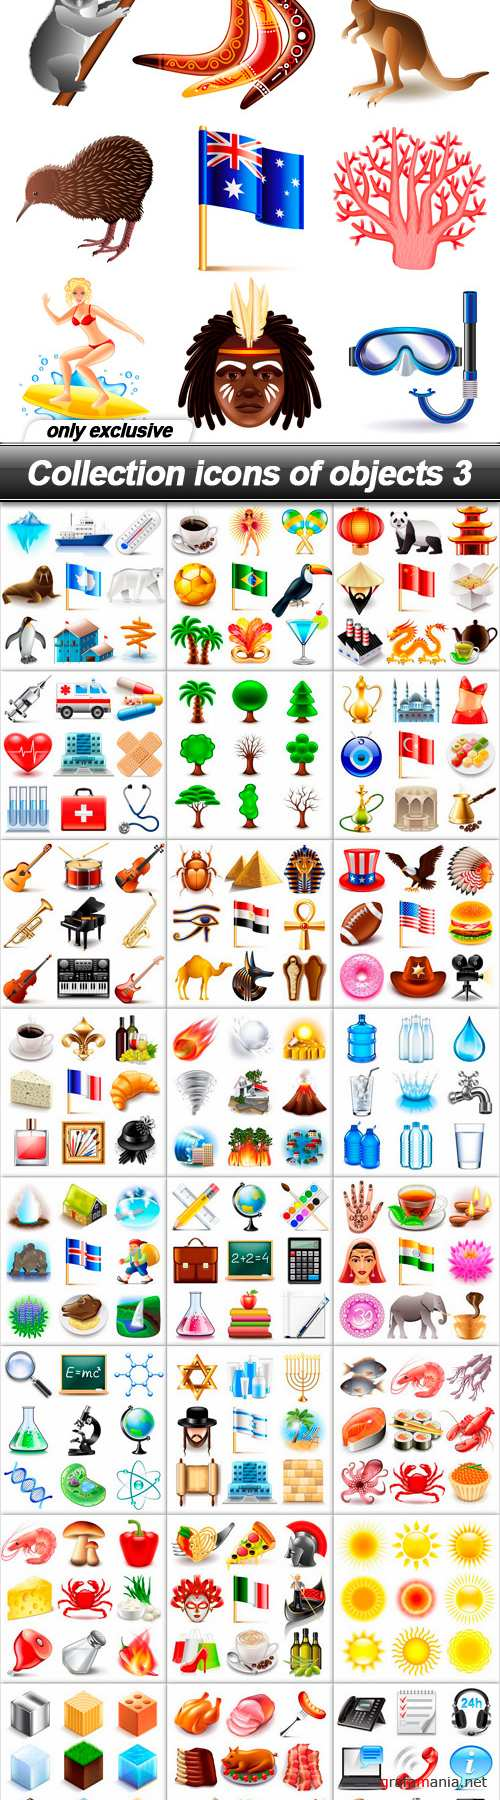 Collection icons of objects 3